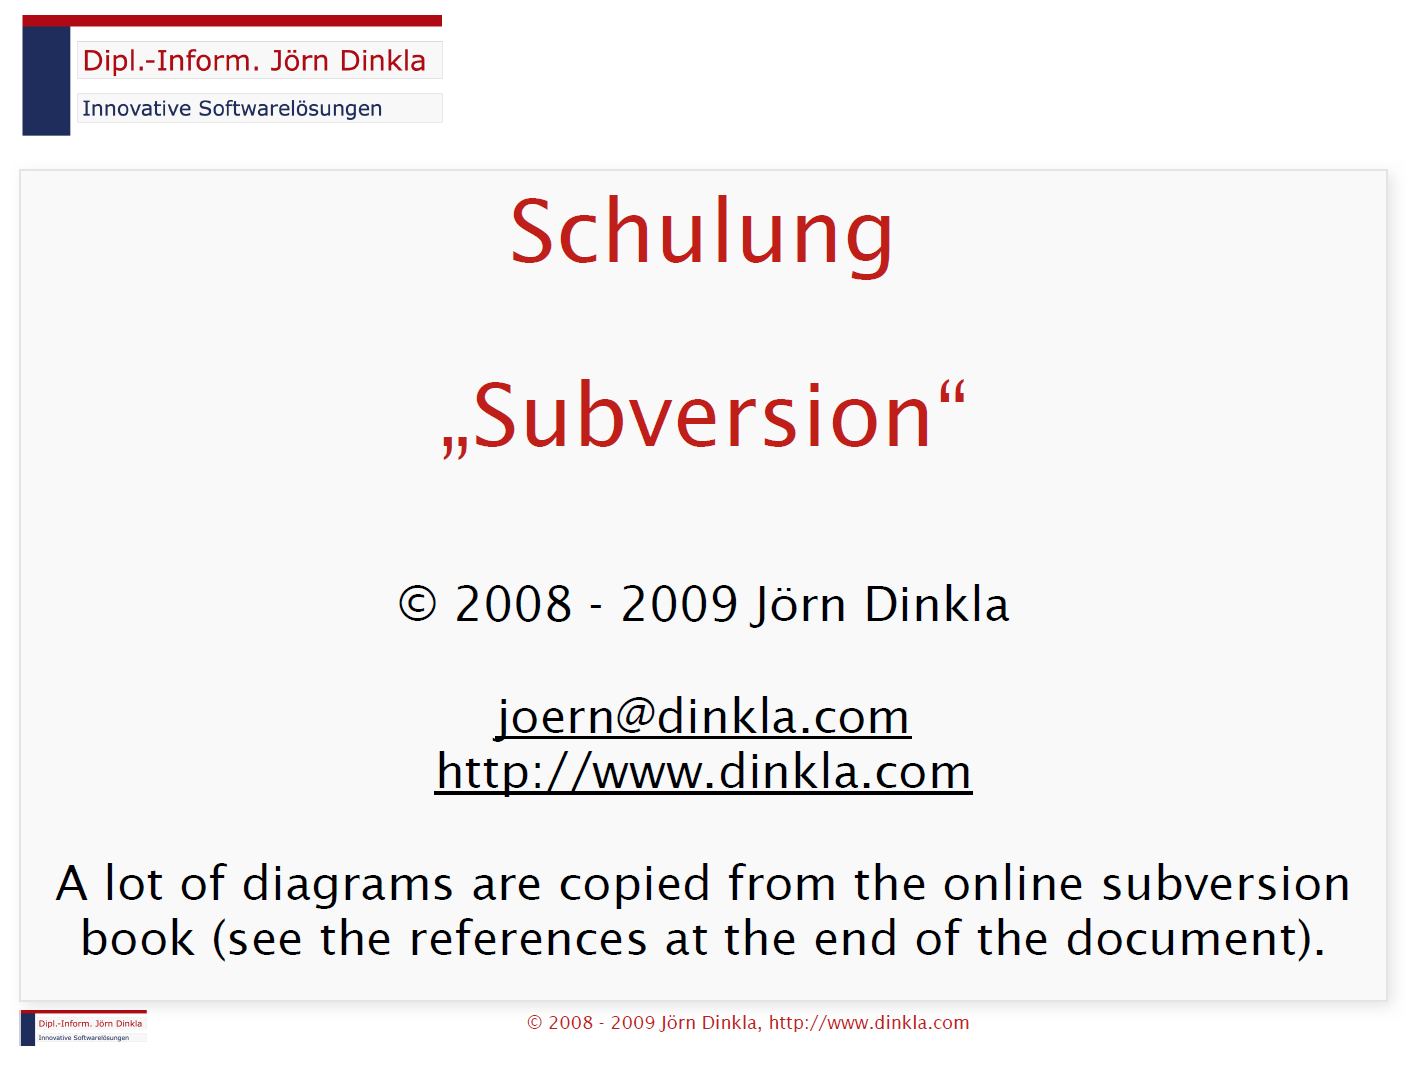 Schulung 'Subversion'